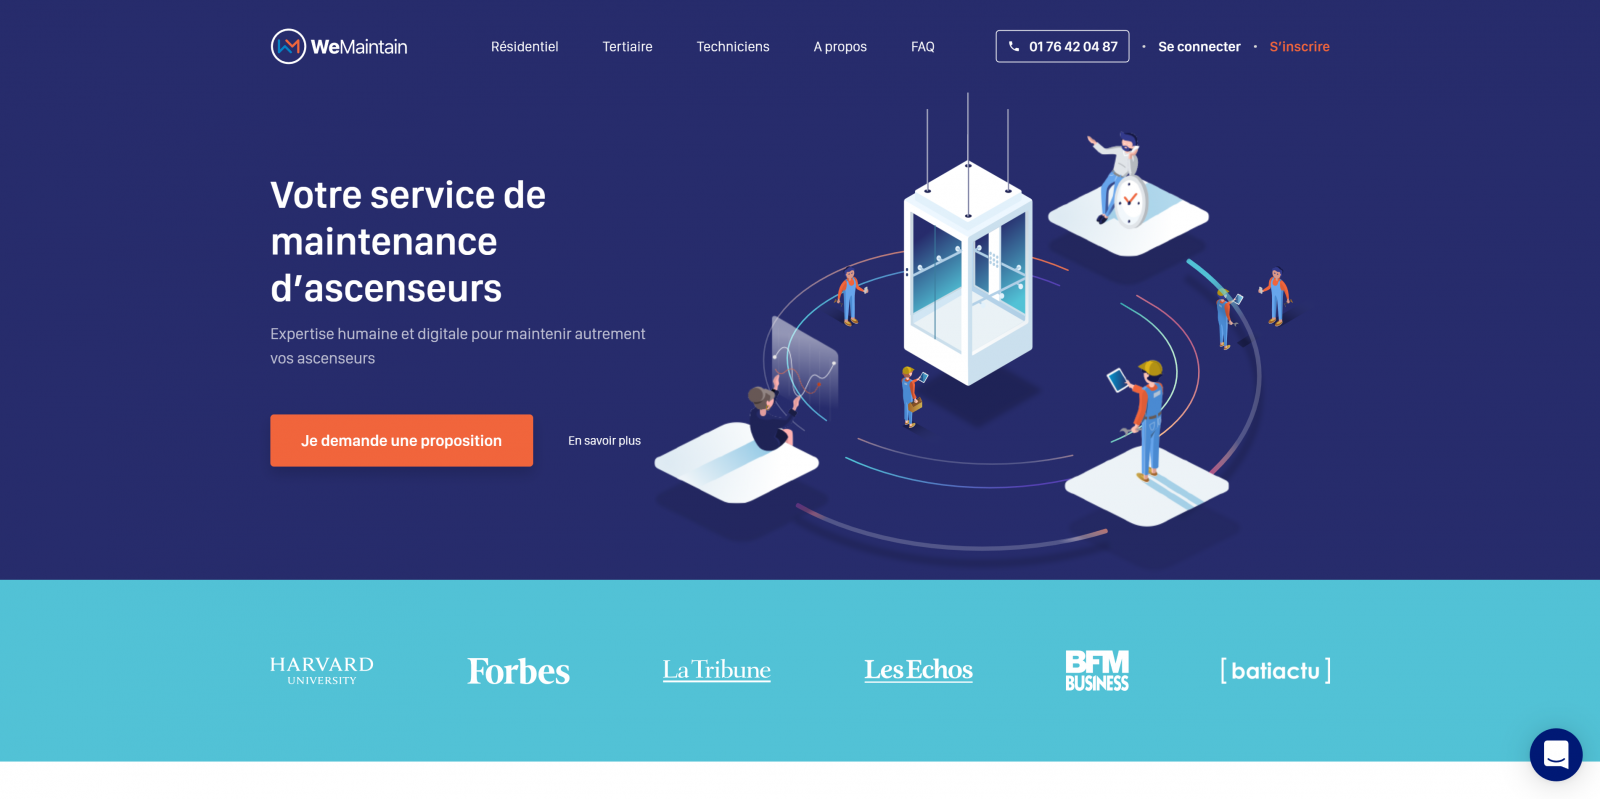 Wemaintain Service Maintenance Ascenseurs Immobilier 20